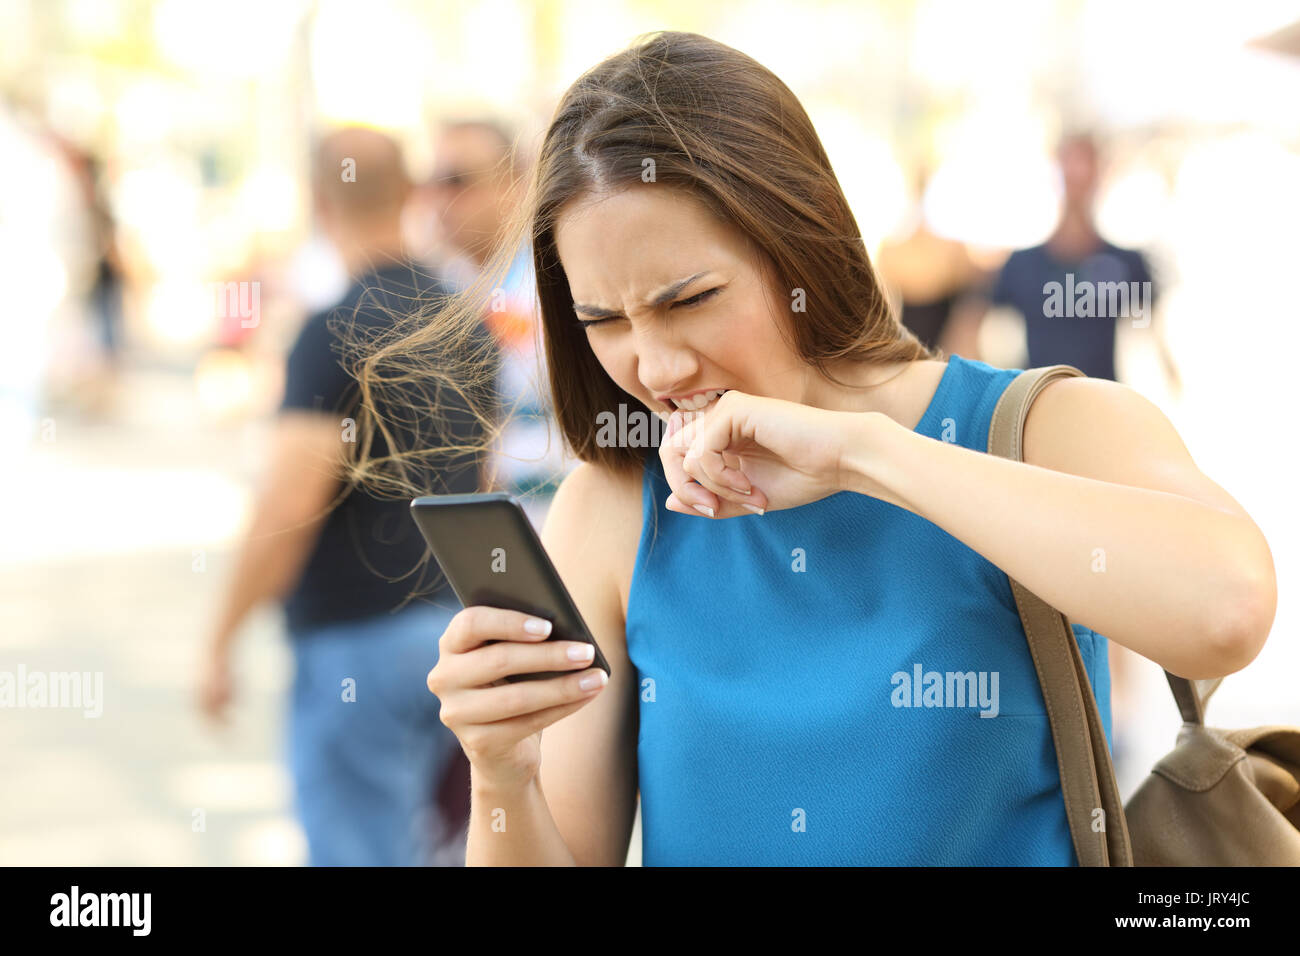 Angry woman fed up of her mobile phone on the street - Stock Image